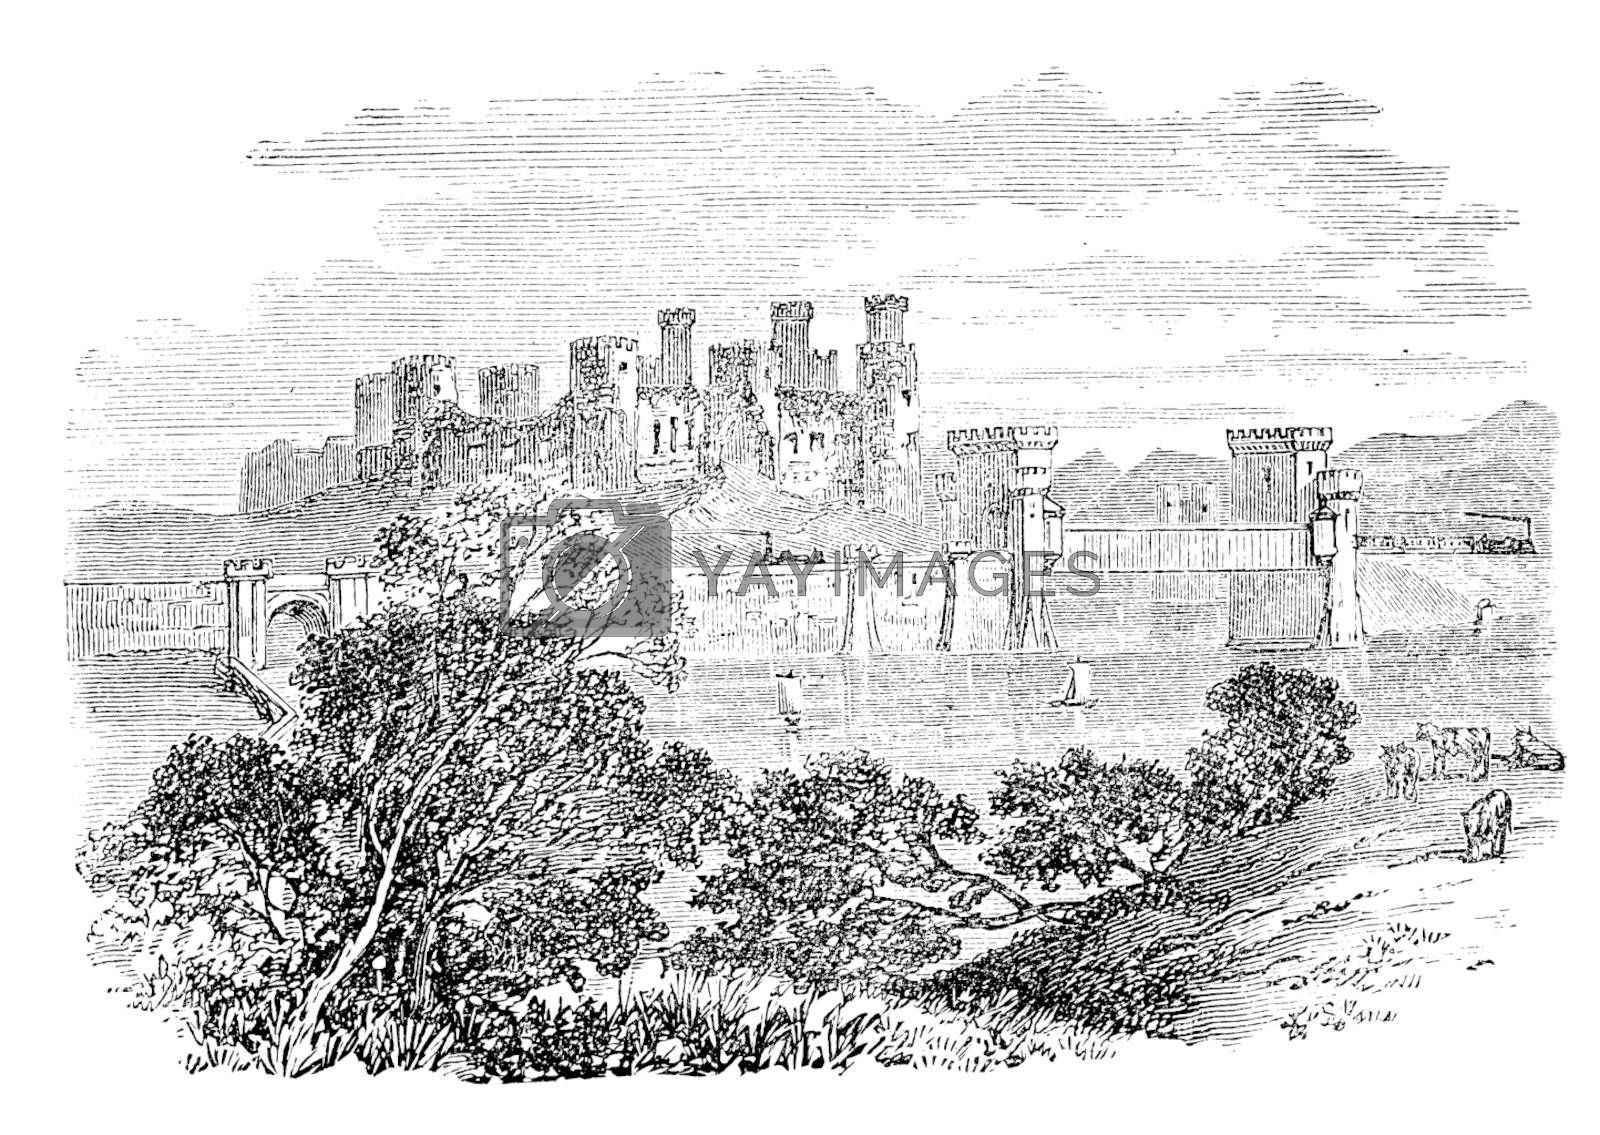 Old engraved illustration of Conway Castle, in North Wales. Build by King Edward between 1283 and 1289. Scan from Trousset Encyclopedia 1886 - 1891. Live trace vector.